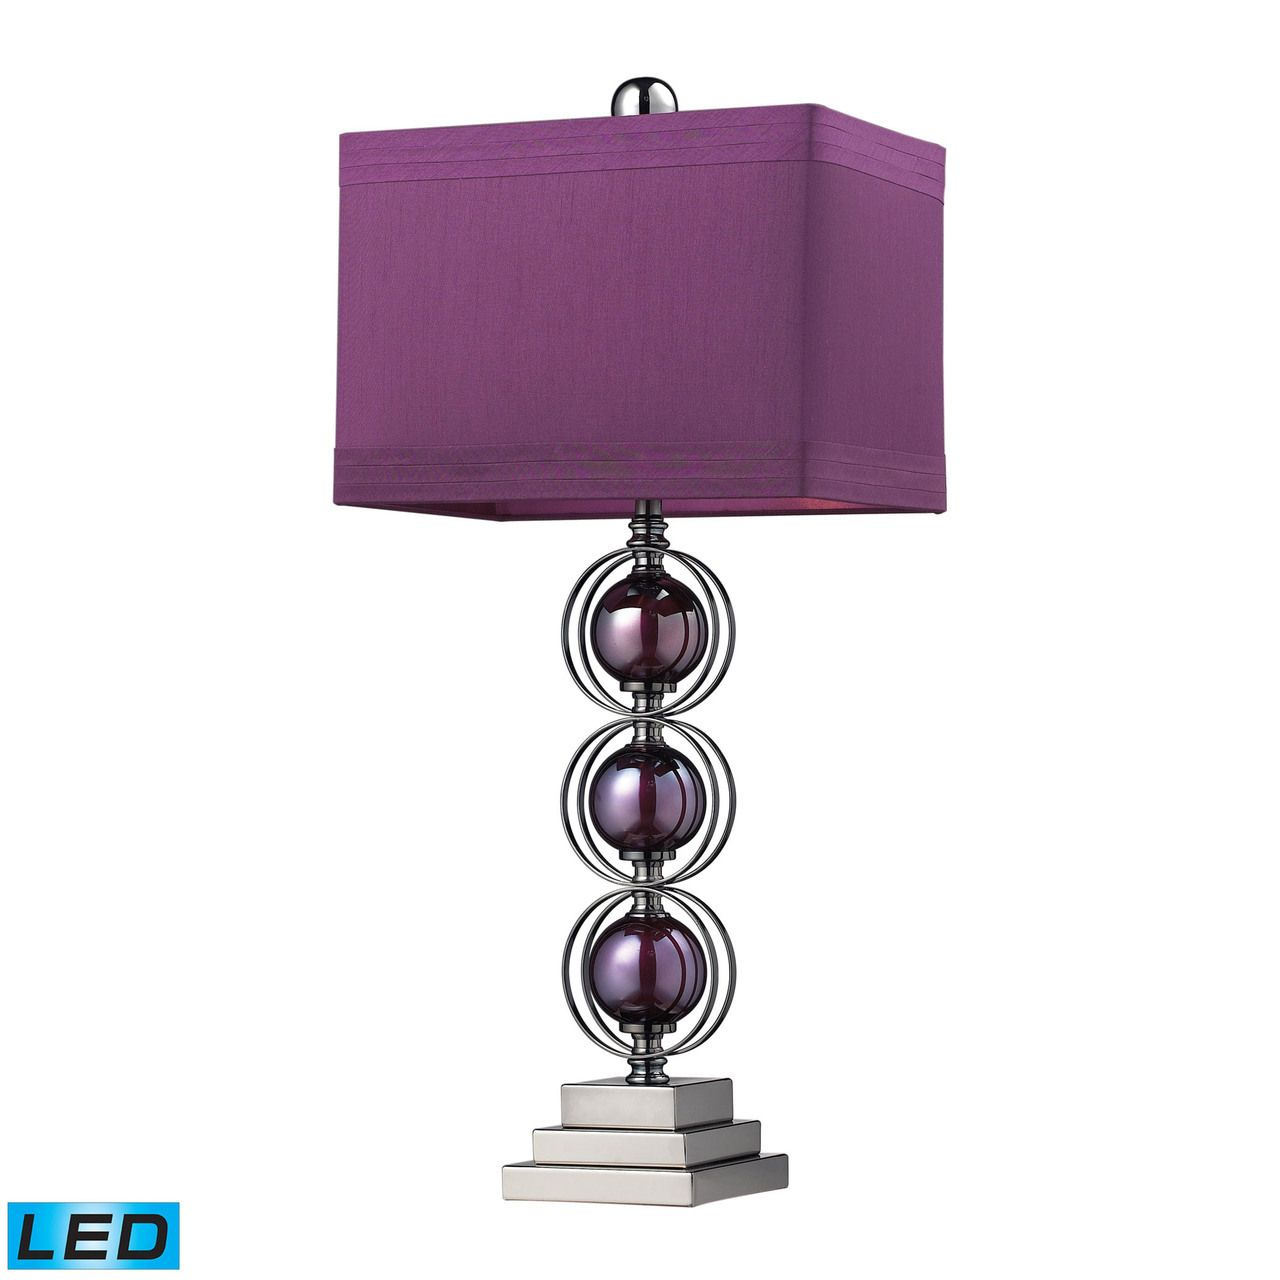 Bedside table lamps purple - Alva Contemporary Led Table Lamp In Black Nickel And Purple D2232 Led Purple Table Lampsbedroom